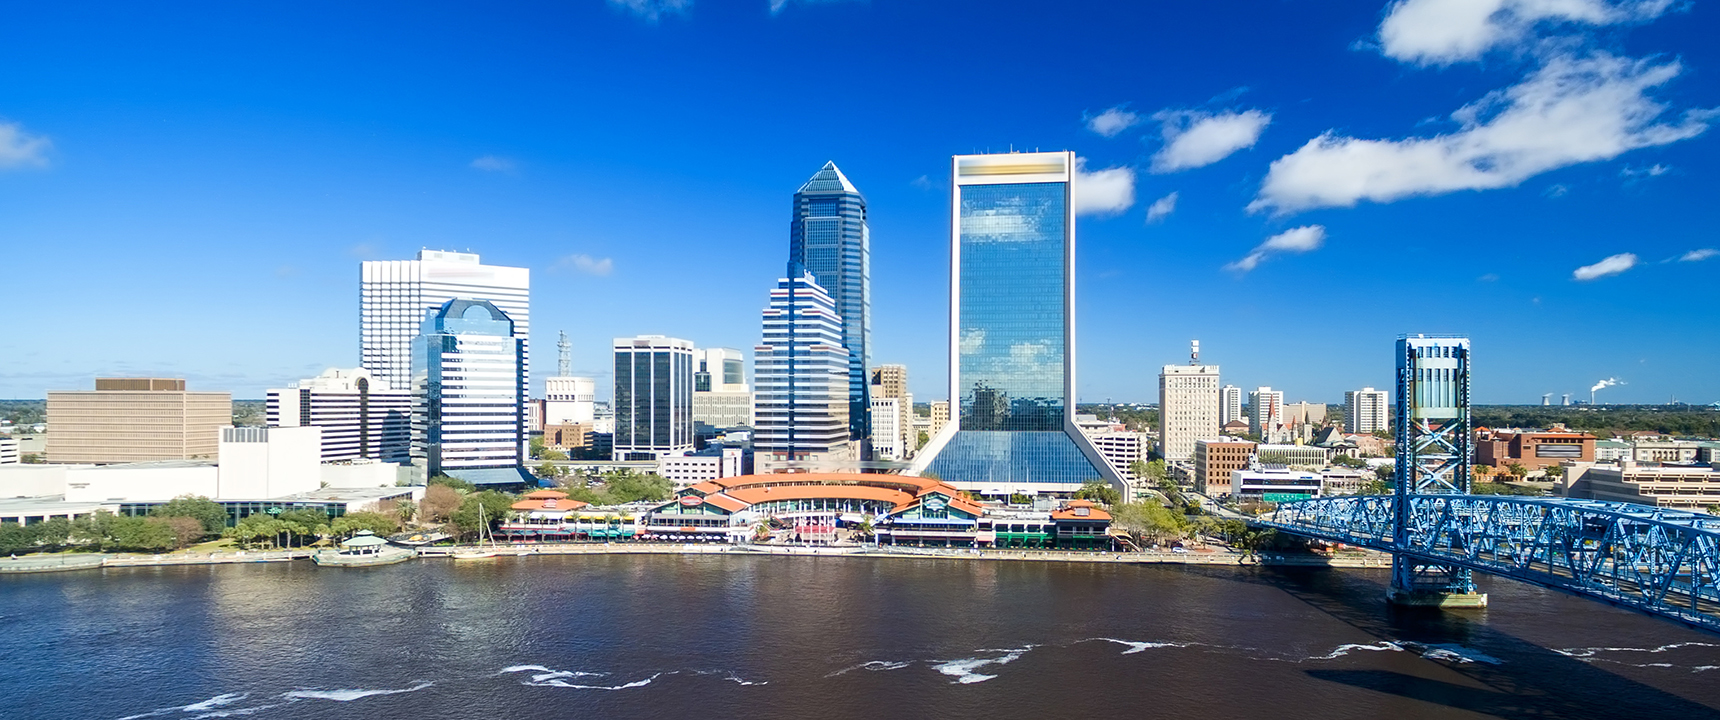 Photo of Jacksonville, Florida where the North Florida Business Center is located.